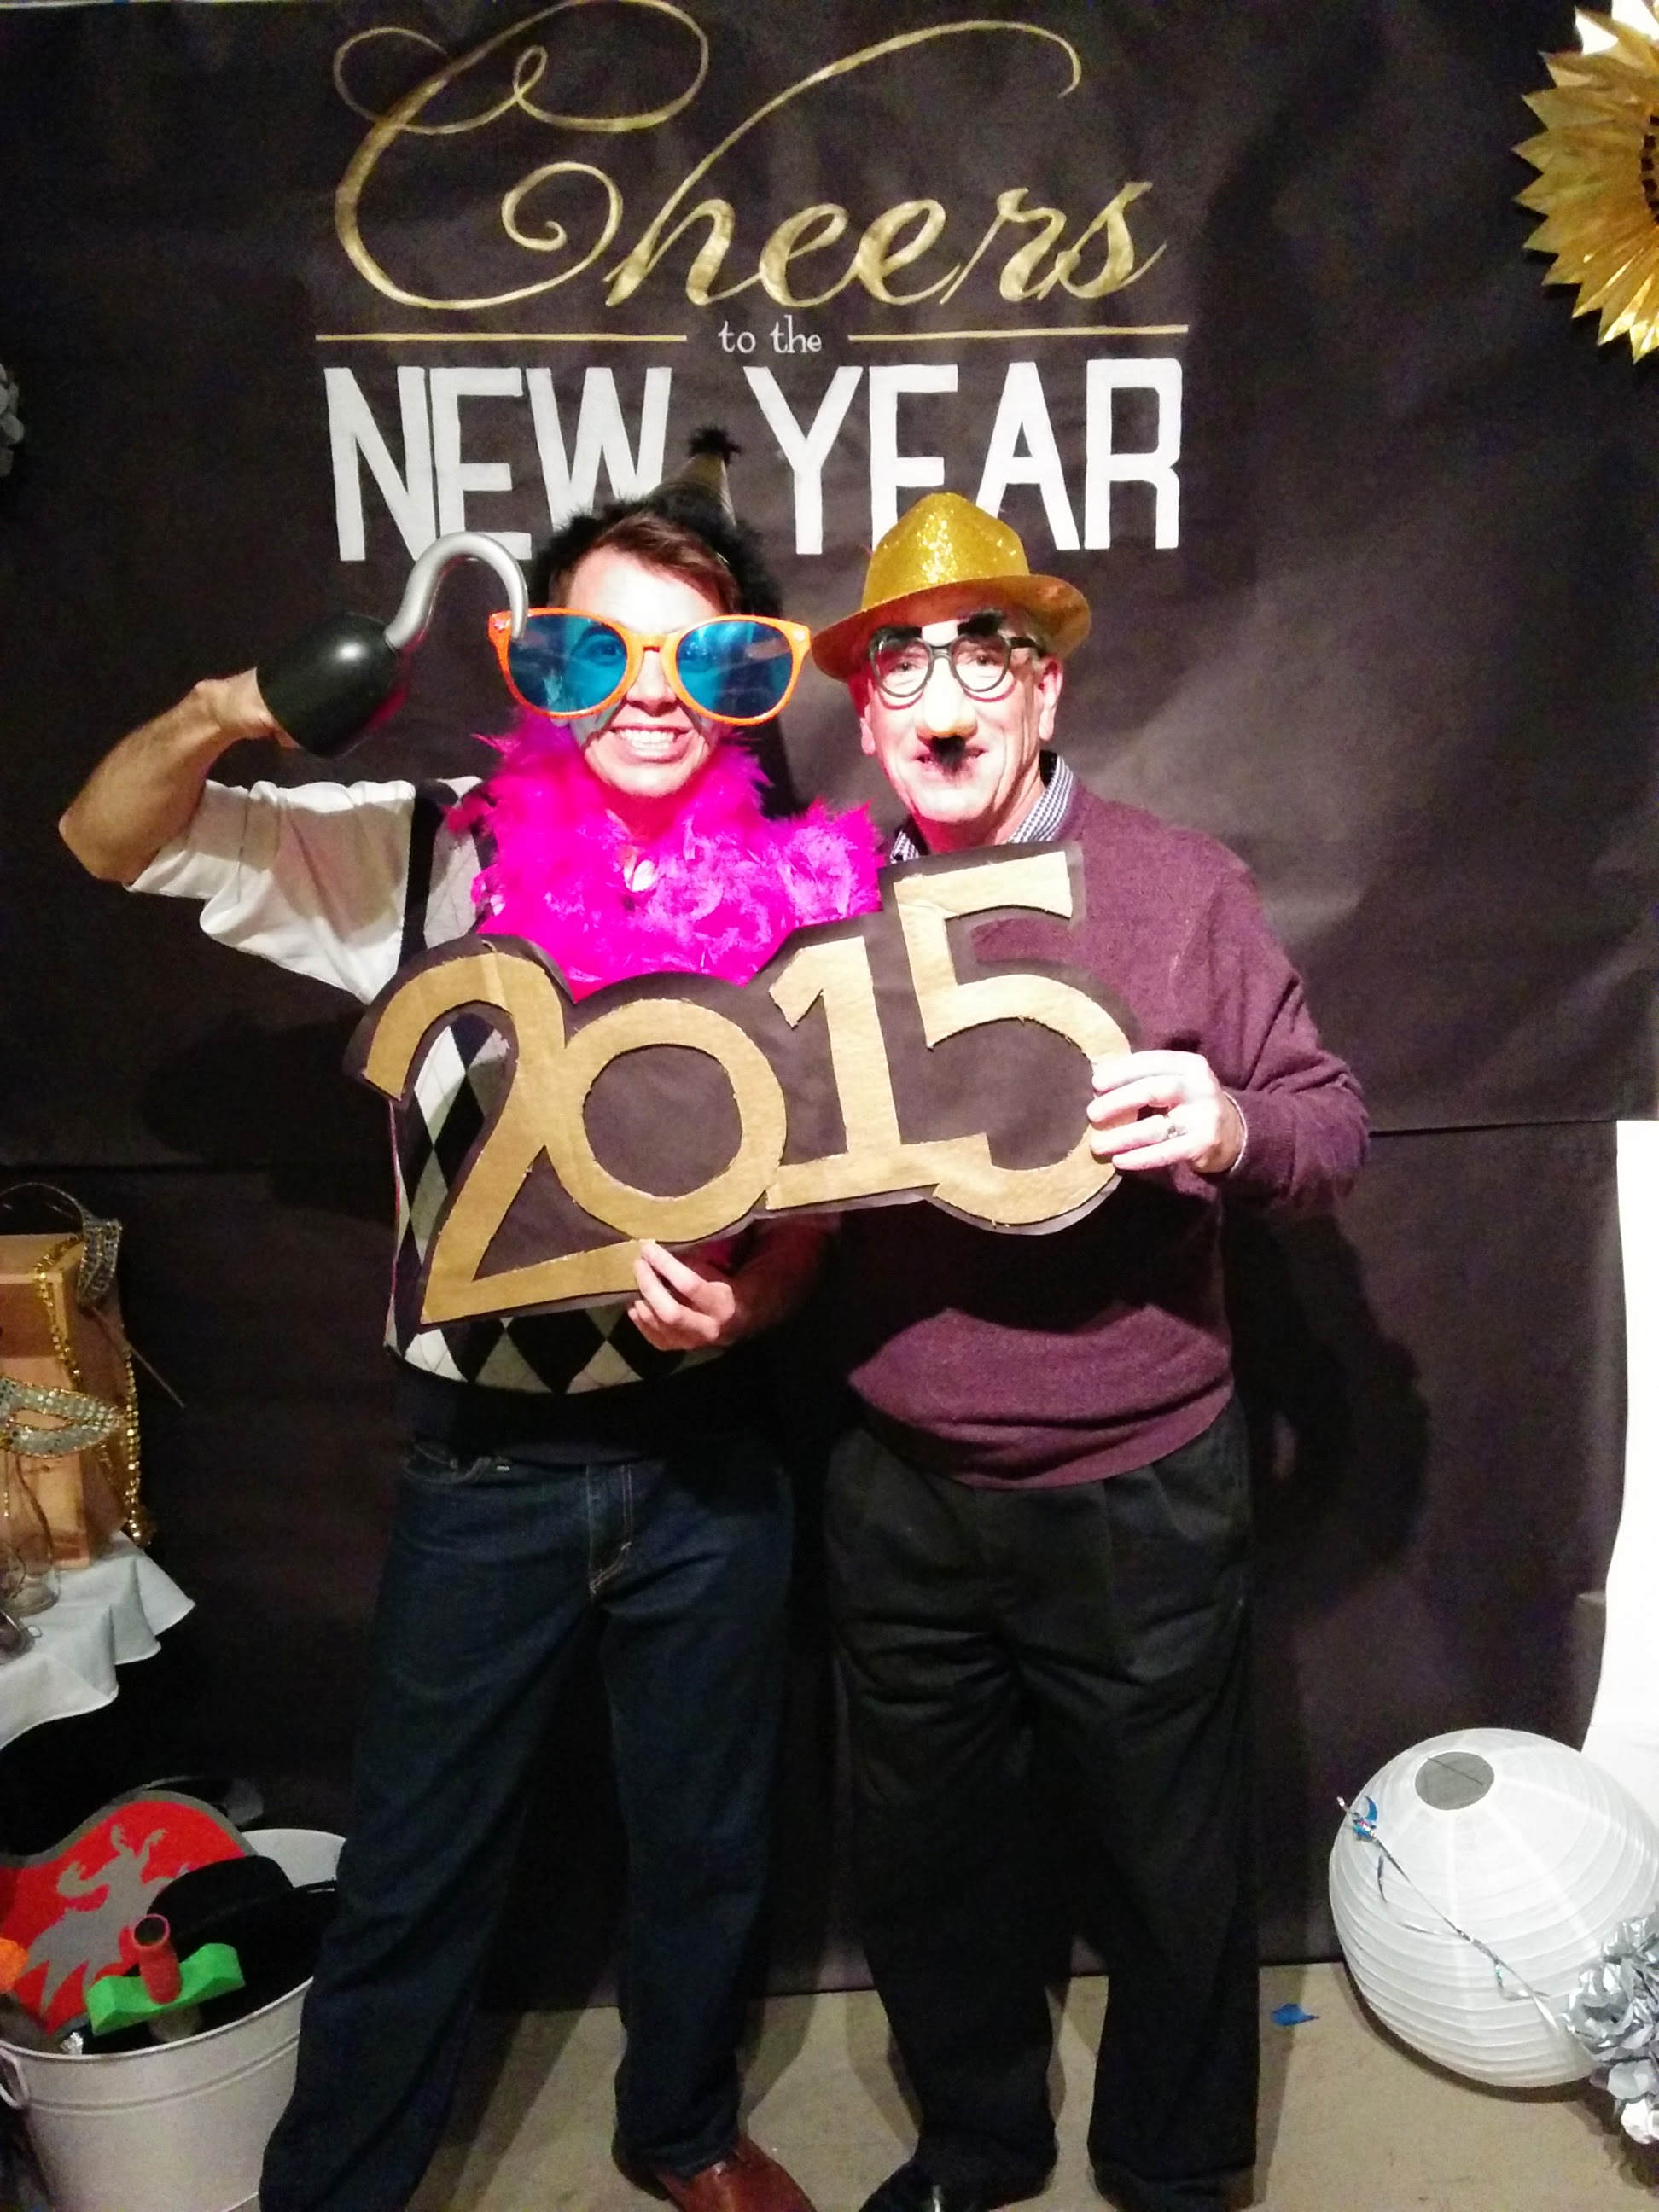 Who wouldn't want to ring in the New Year with Matt & Jim?